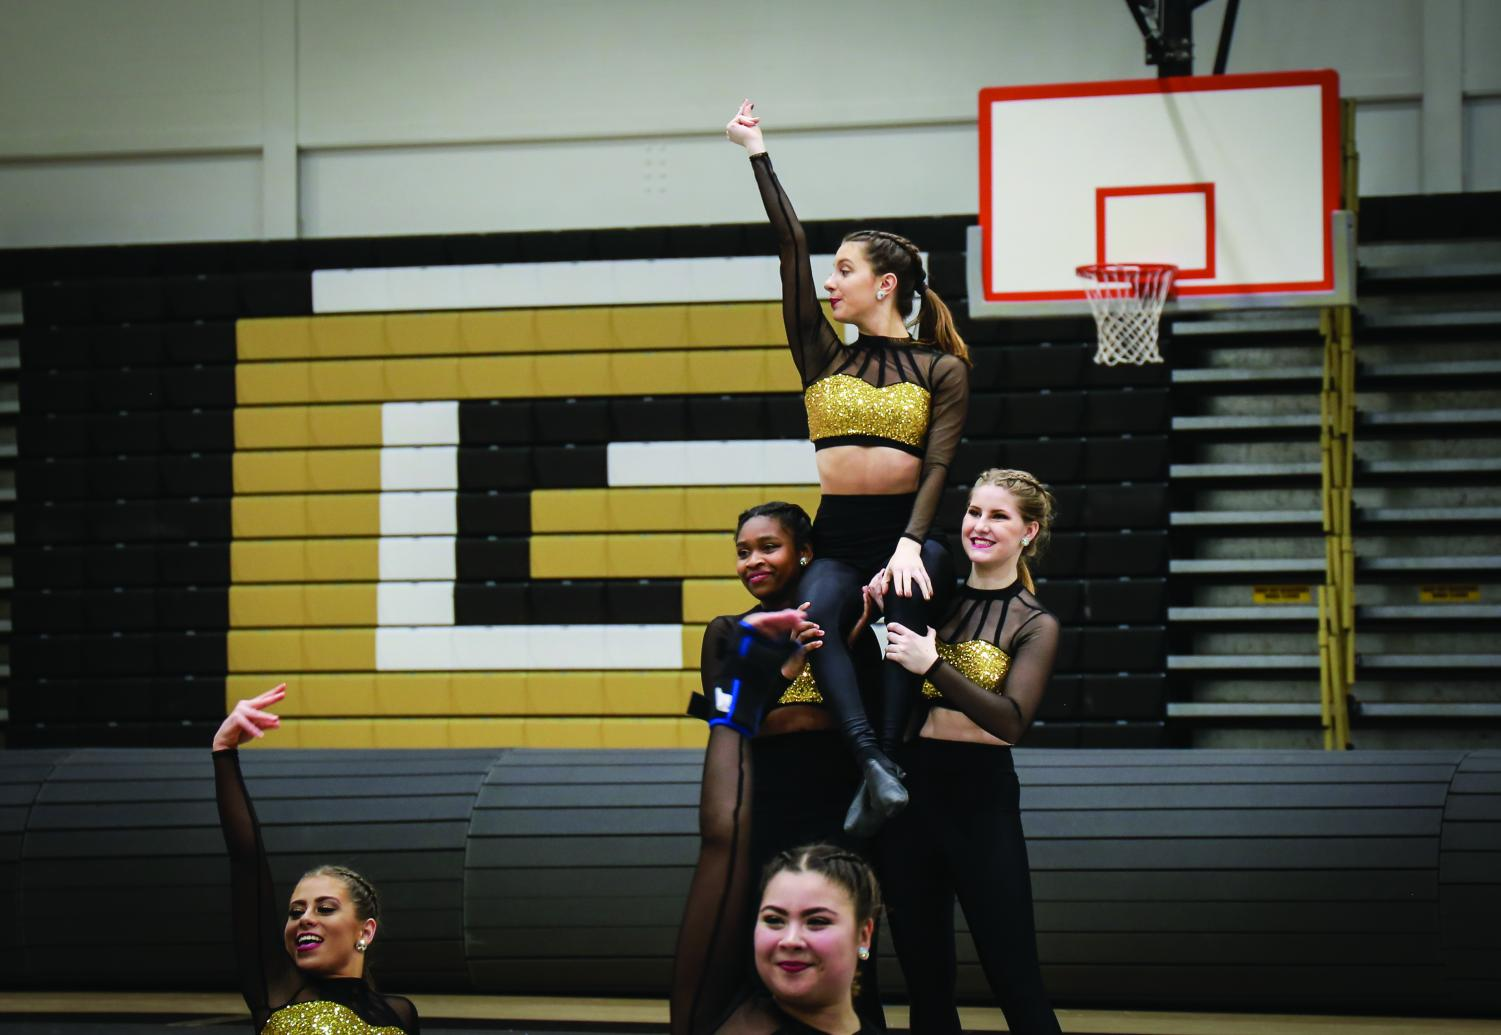 Members of the dance team compete at their first home meet that was held earlier this year at Gateway high school in Monroeville, Pa.